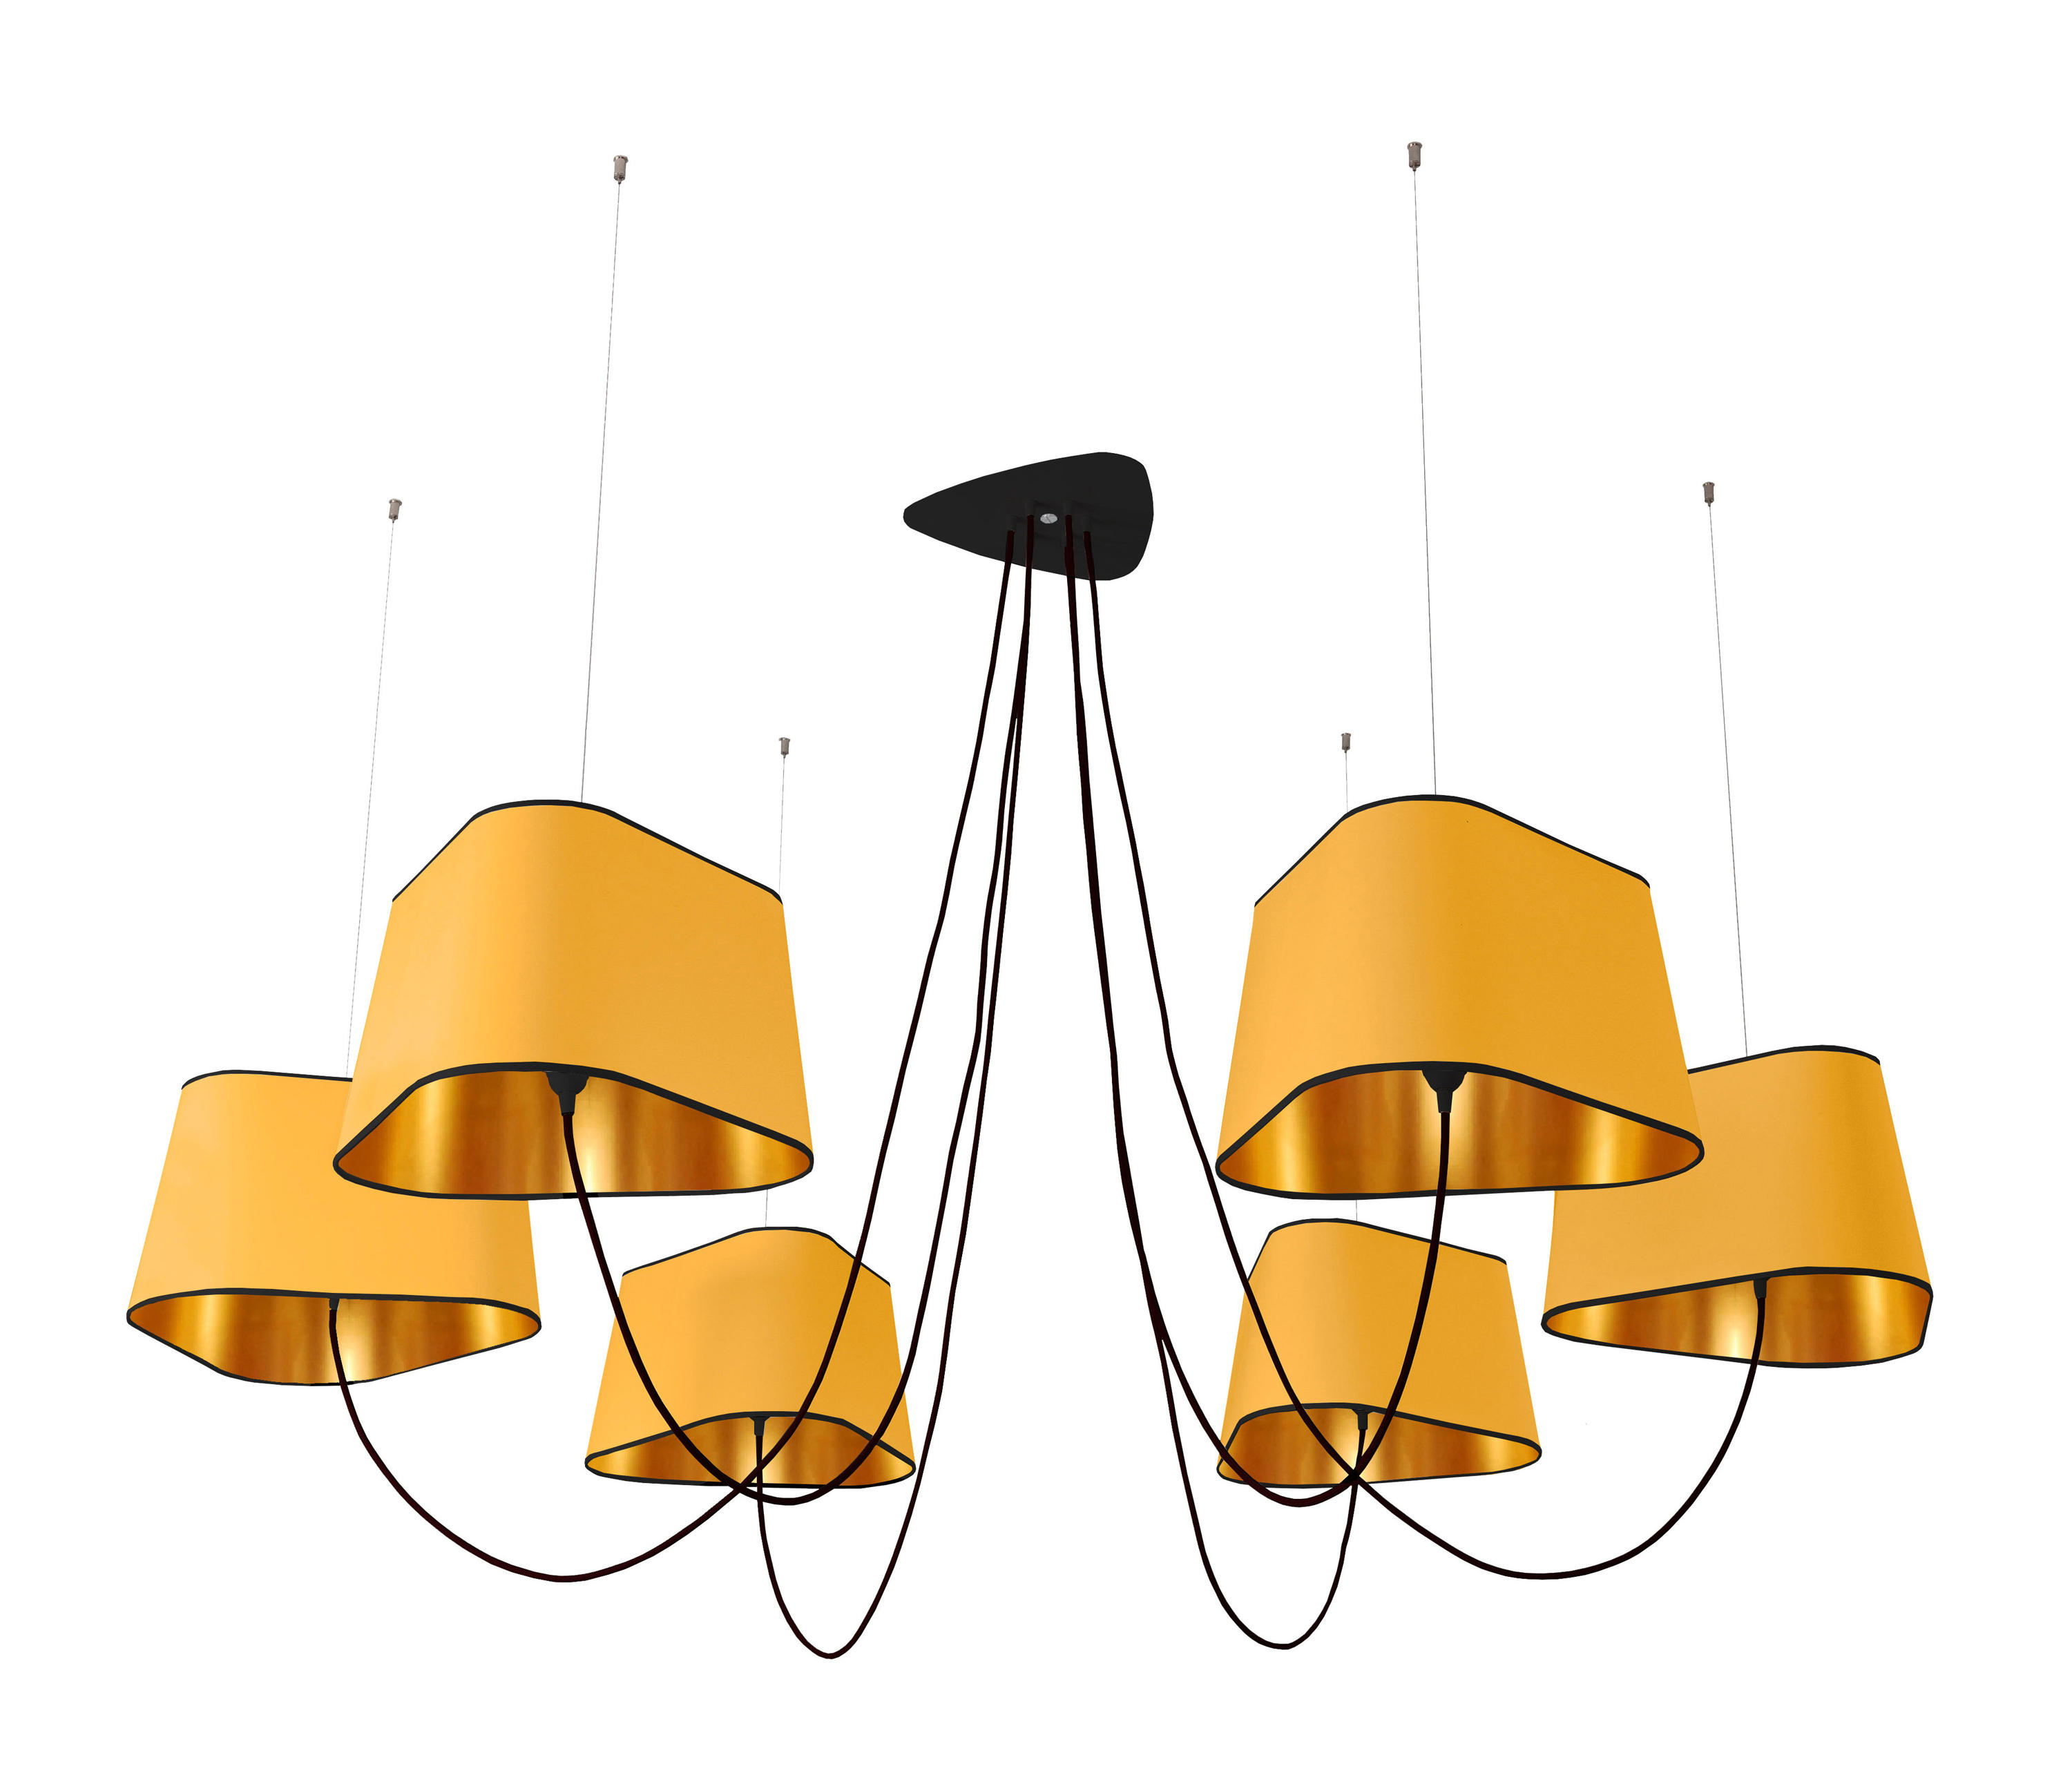 Nuage chandelier 6 large ceiling suspended chandeliers for Suspension design noir